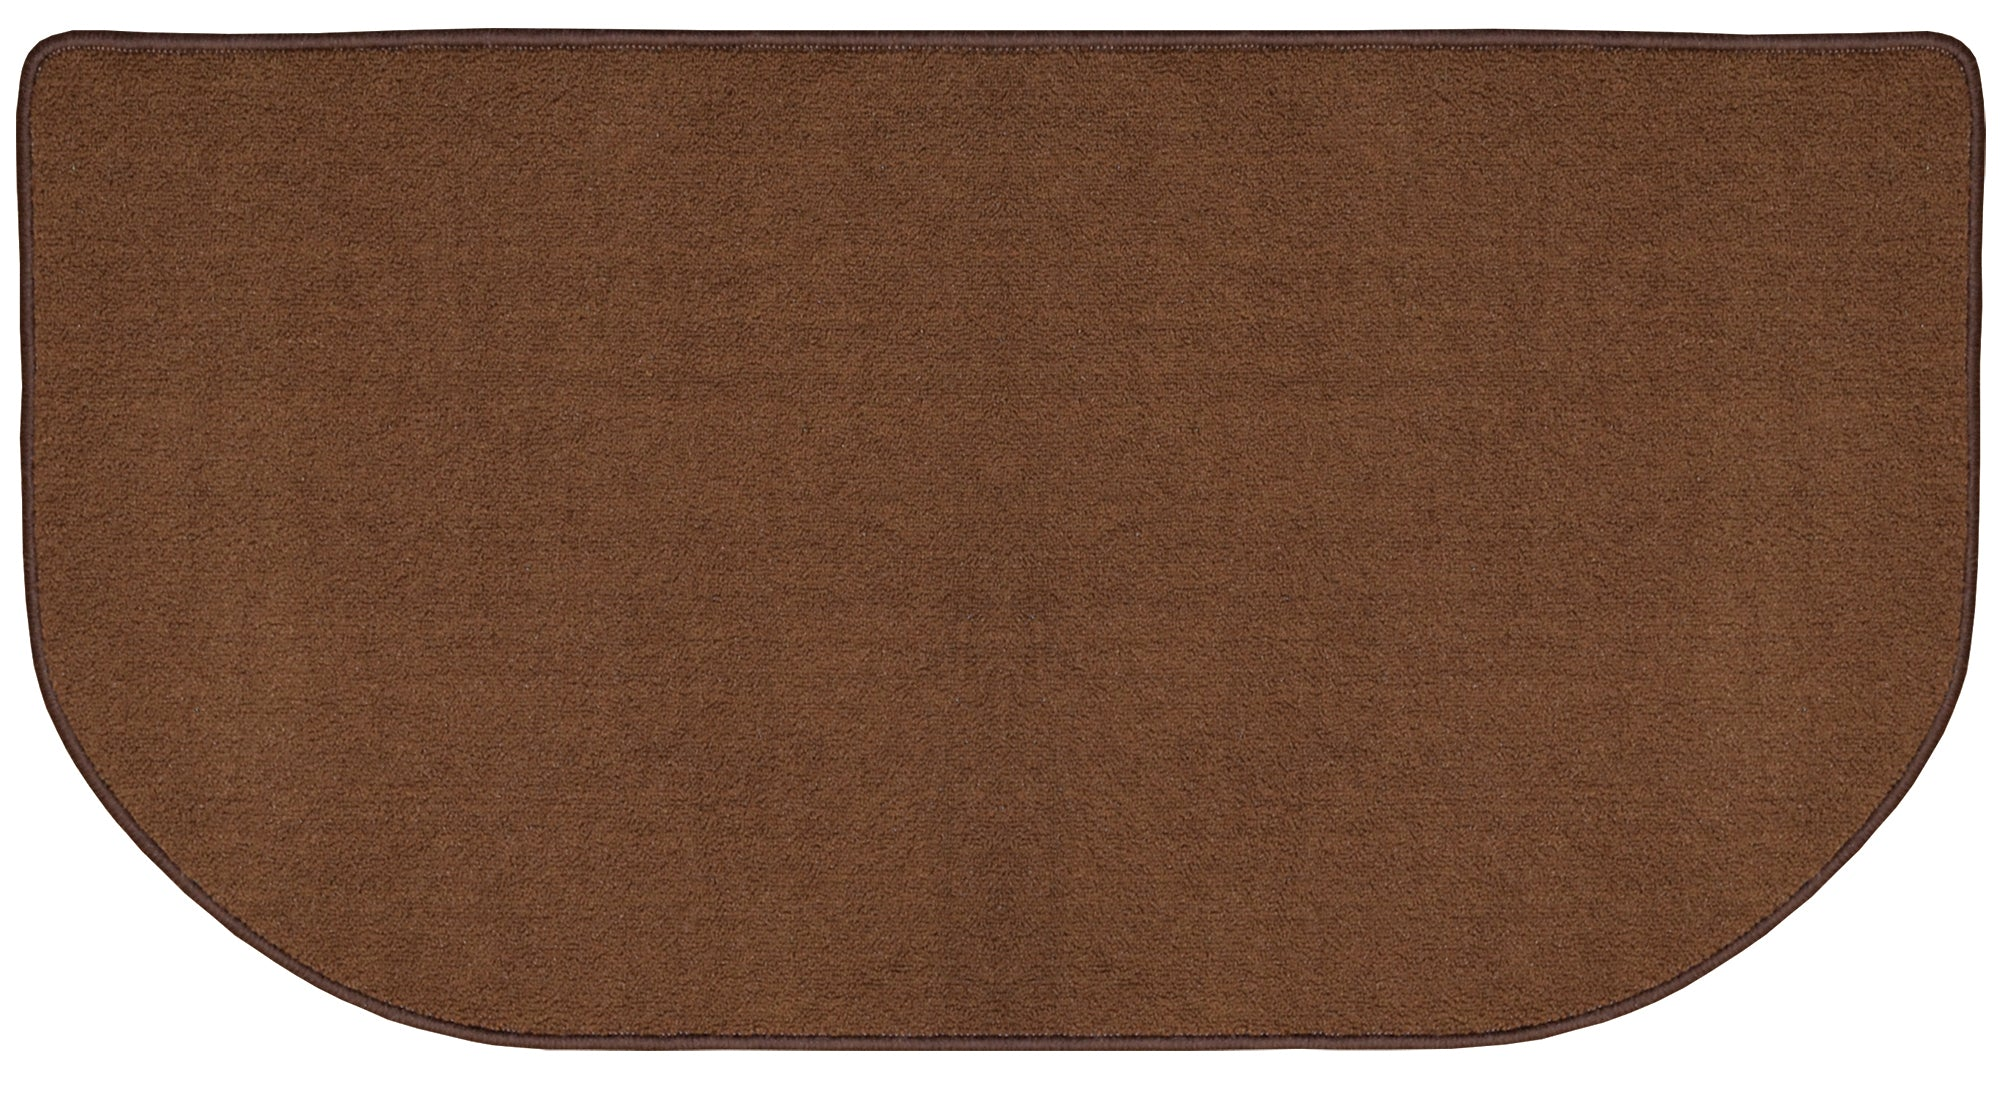 CHOCOLATE COLORED NYLON HEARTH RUG      R-3020 - PATIO AND FIREPLACE CONCEPTS